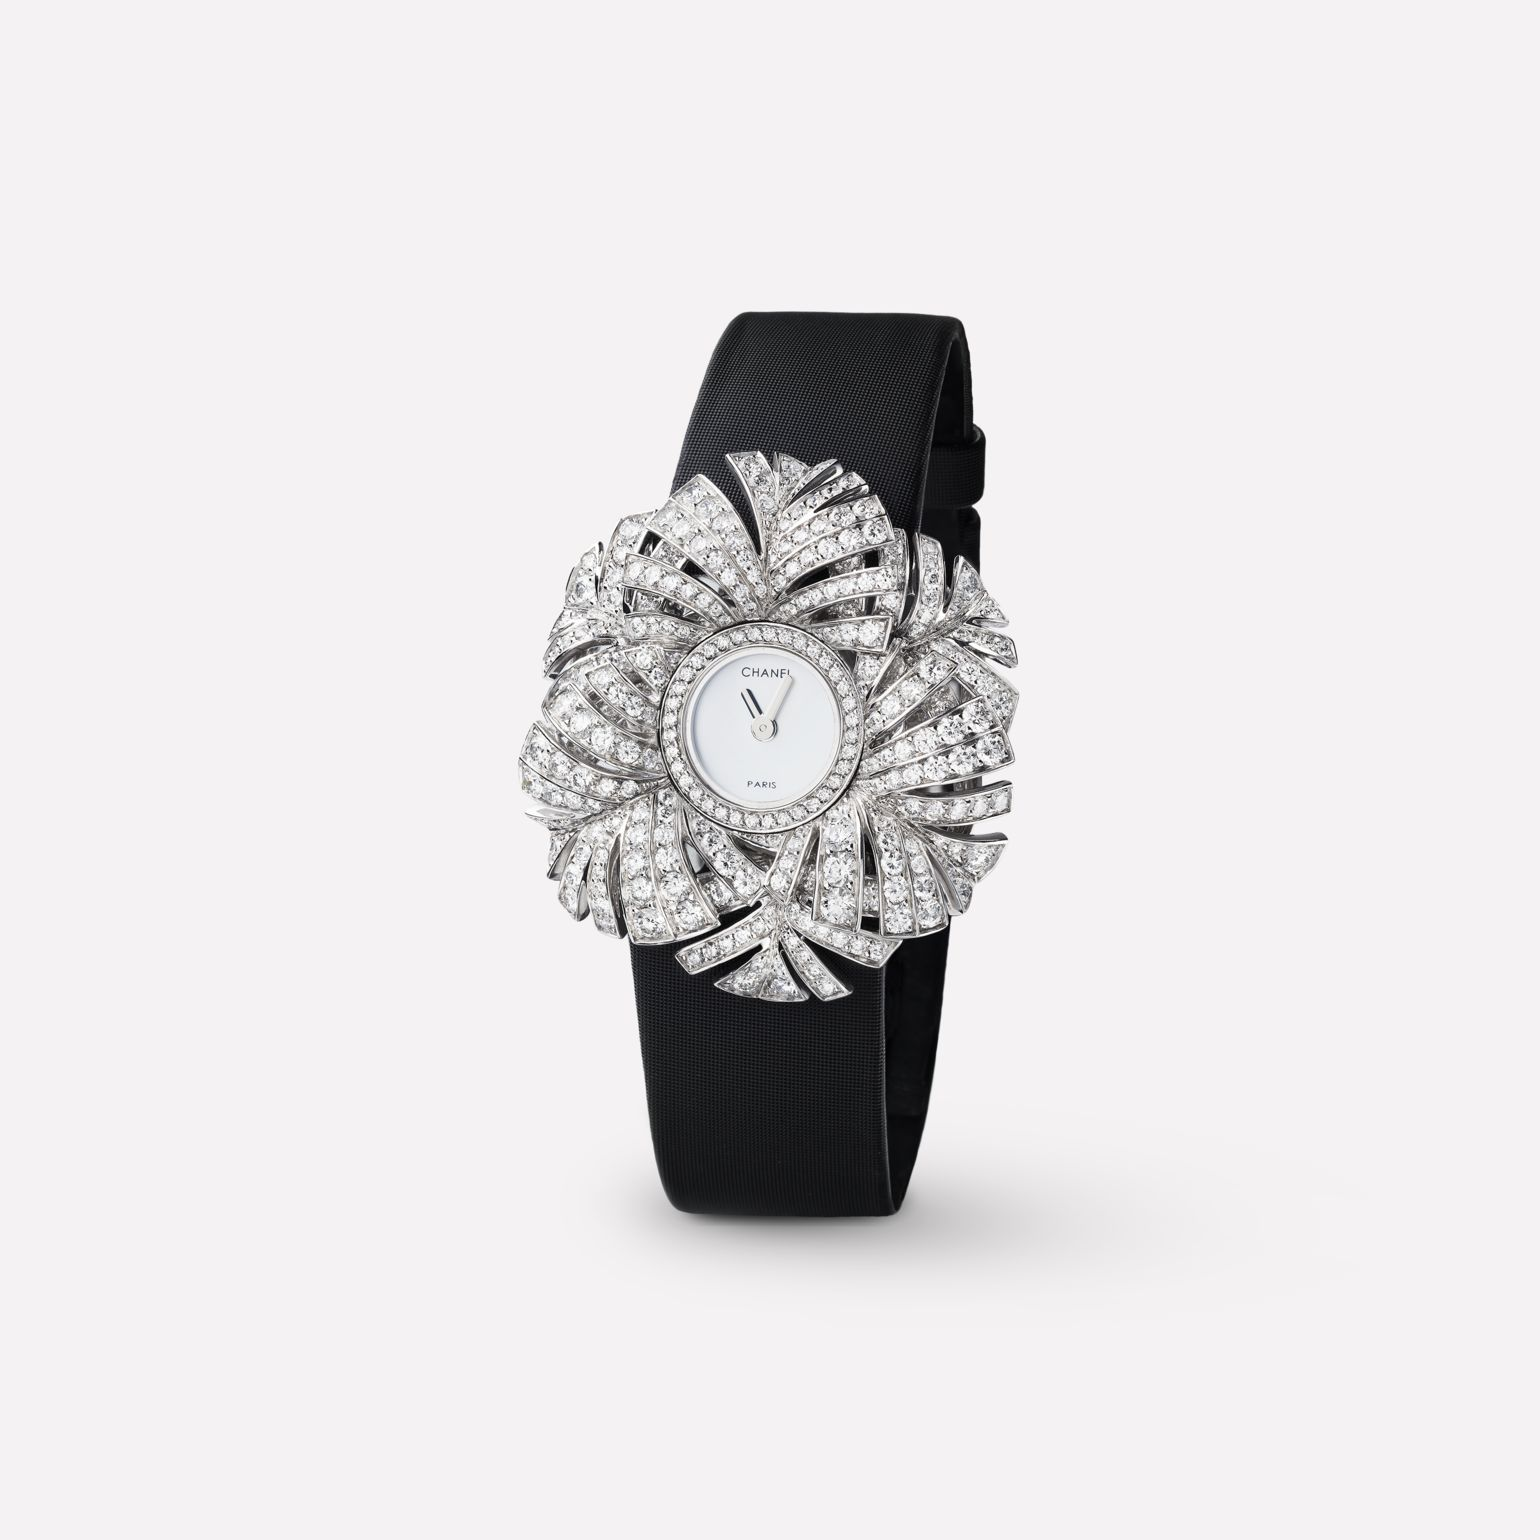 Plume de CHANEL Jewellery Watch Plume Panache motif in 18K white gold and diamonds